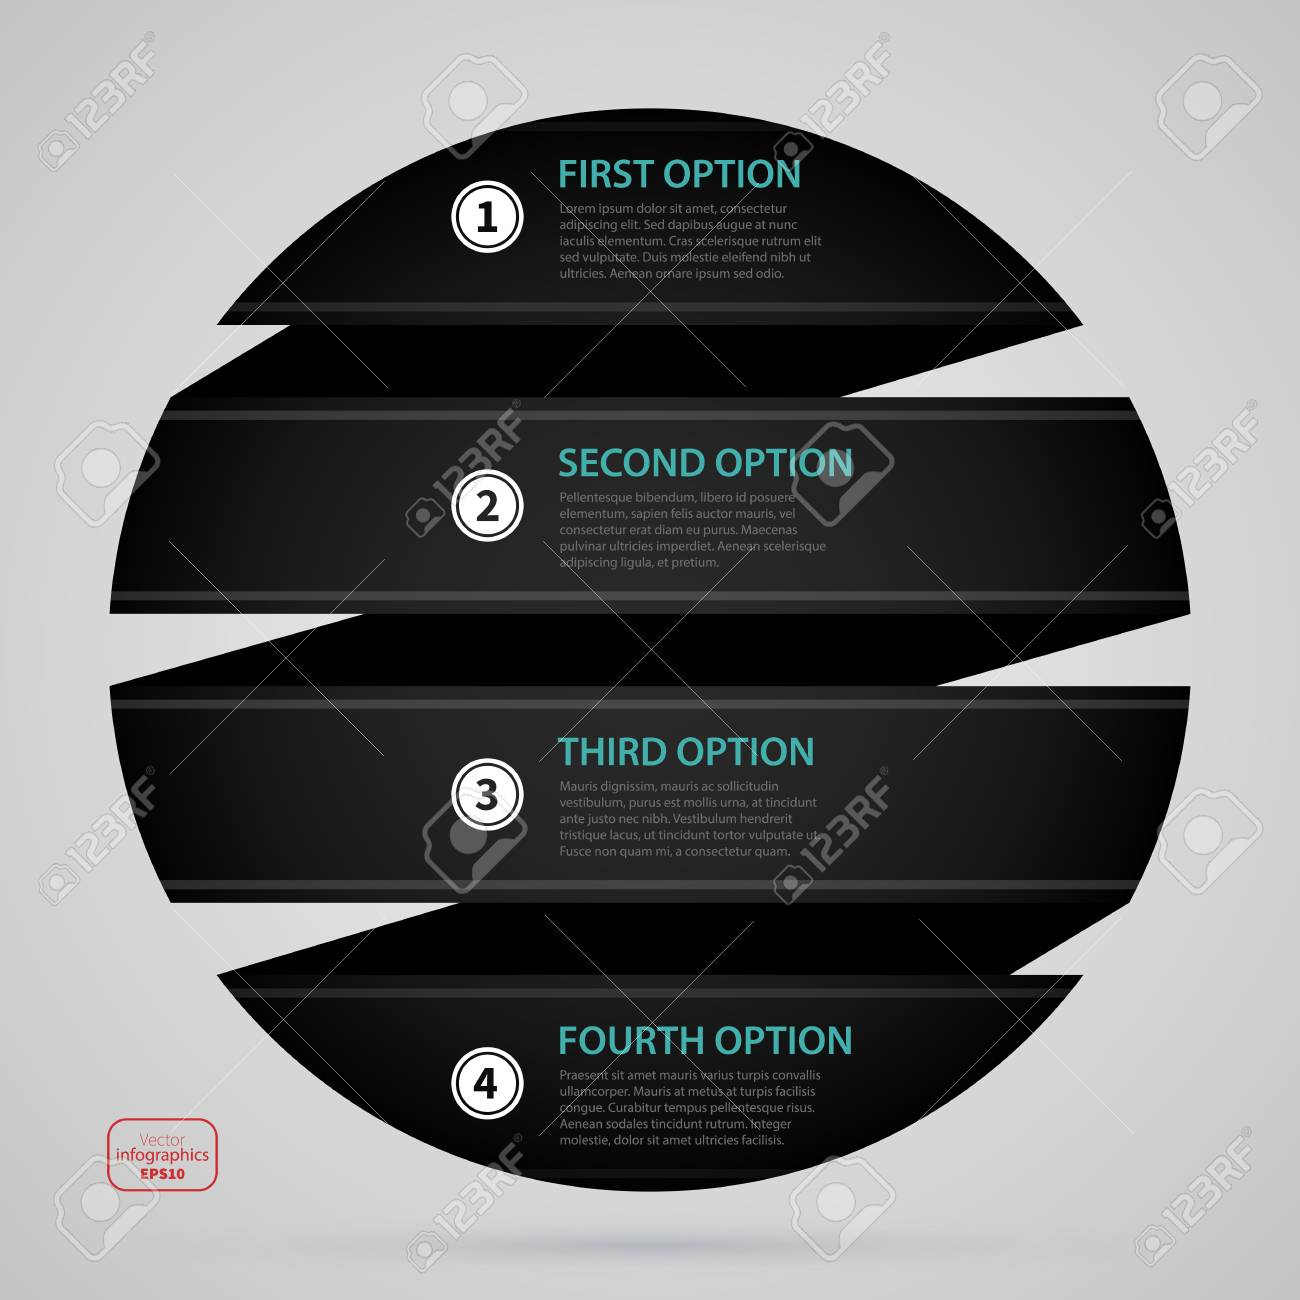 Modern Web Design Sphere Template With Four Options Made Of Black Paper Stripe Strict Corporate